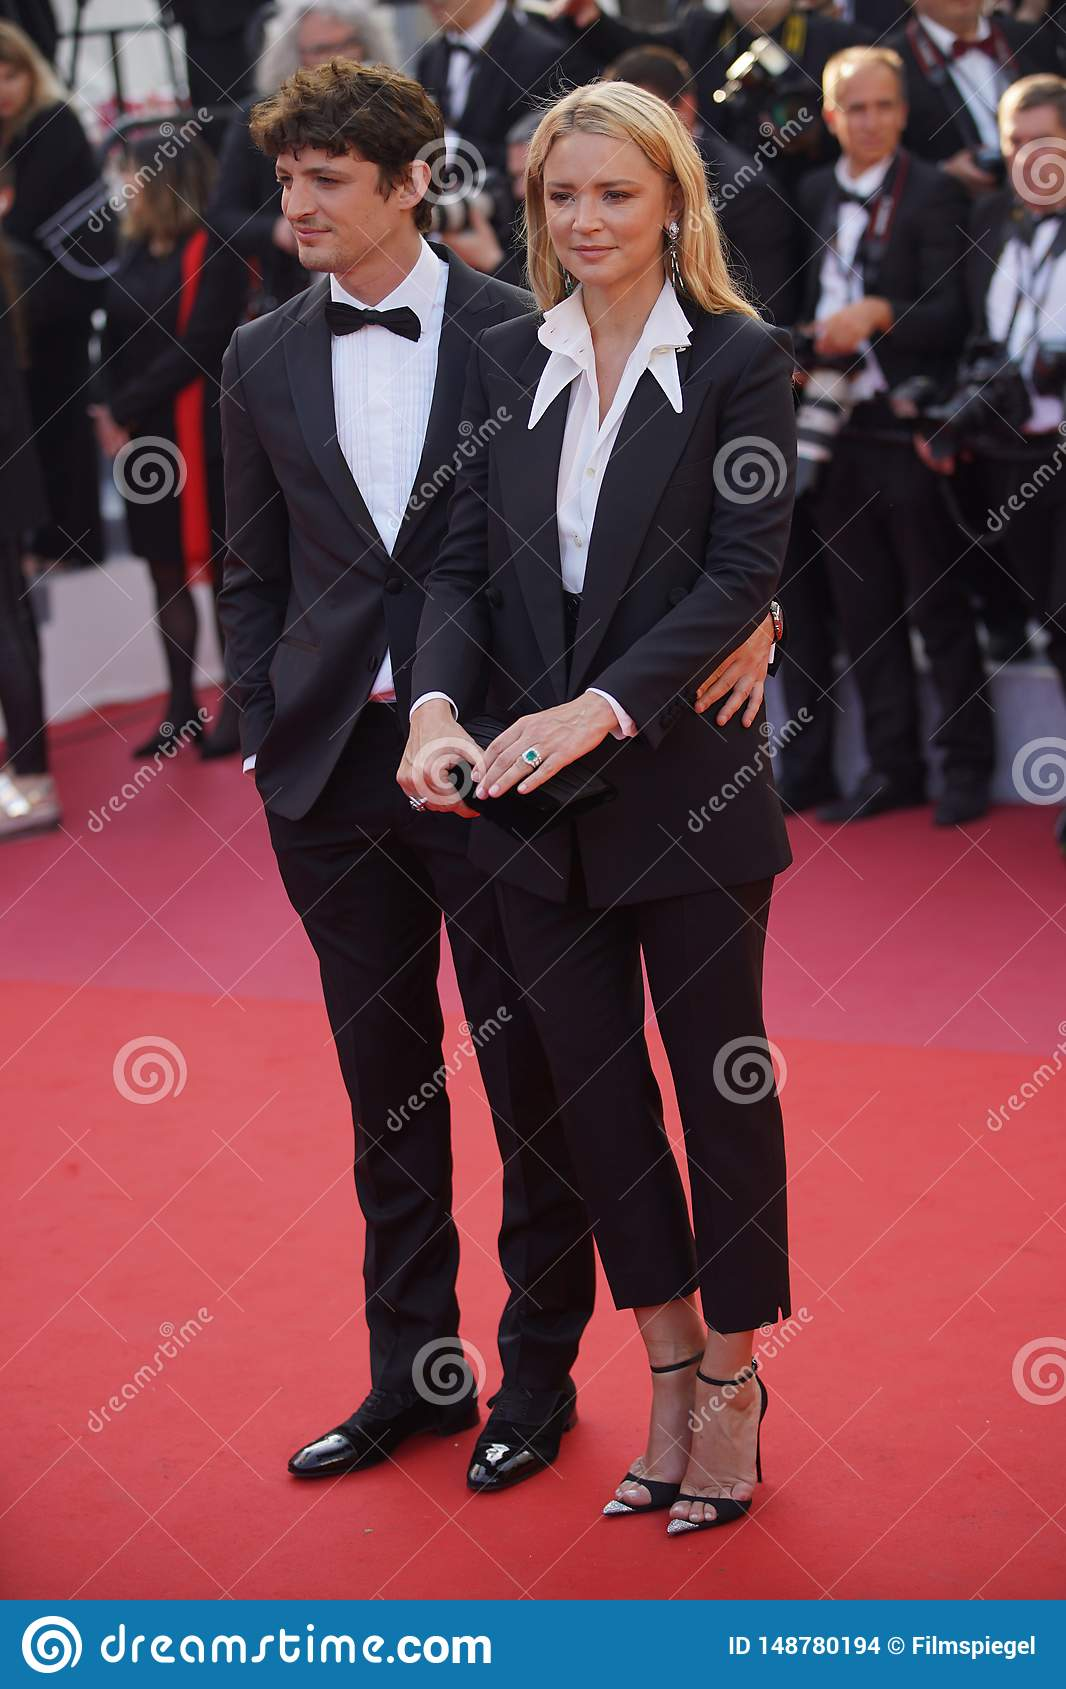 Virginie Efira And Niels Schneider Editorial Stock Image Image Of Beauty Gala 148780194